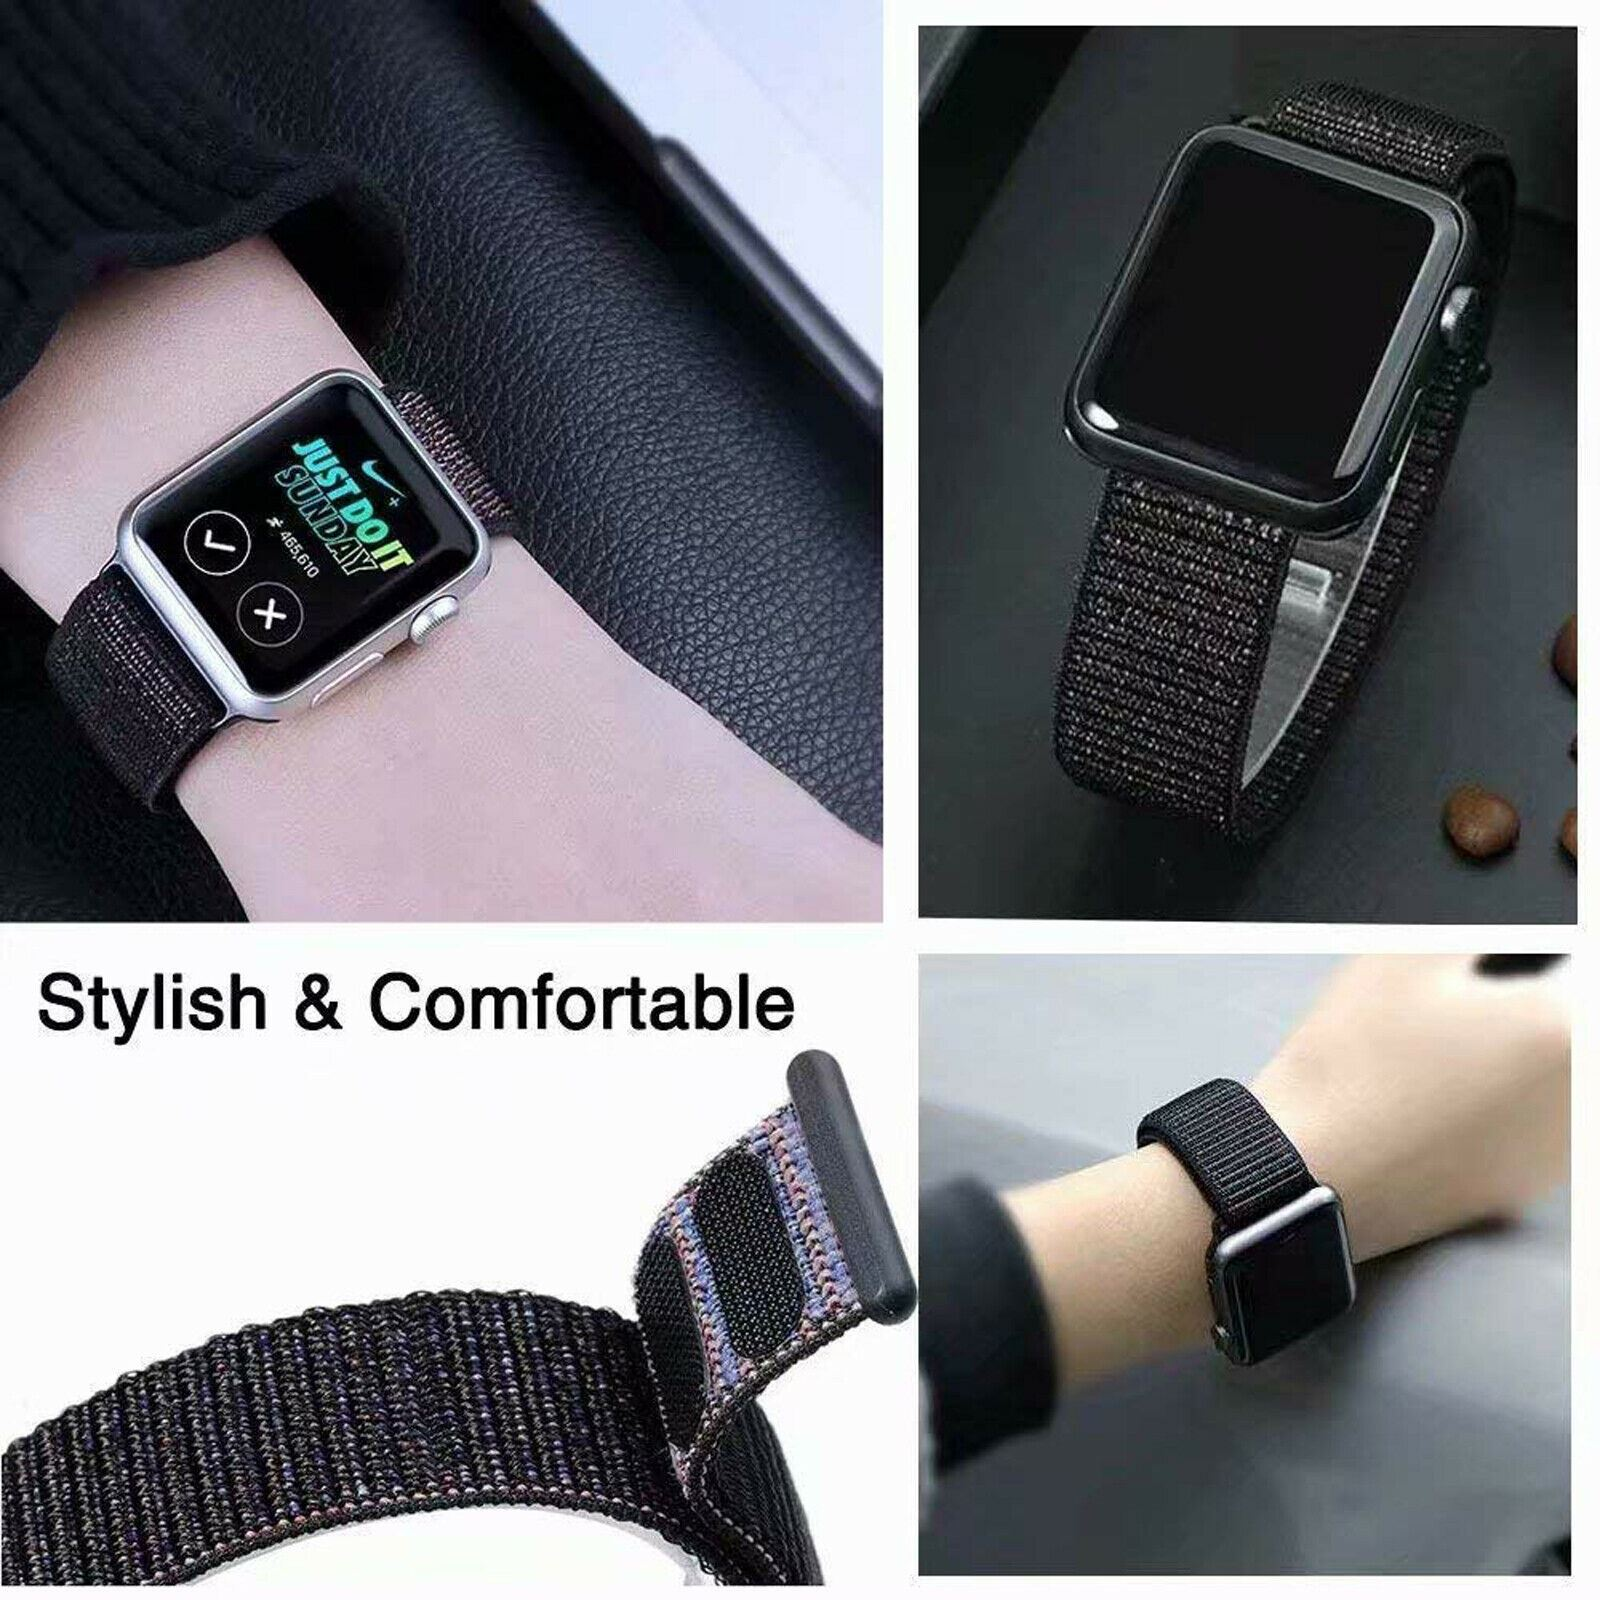 Band-Strap-For-Apple-Watch-Adjustable-Waterproof-Braided-Nylon-Material thumbnail 41